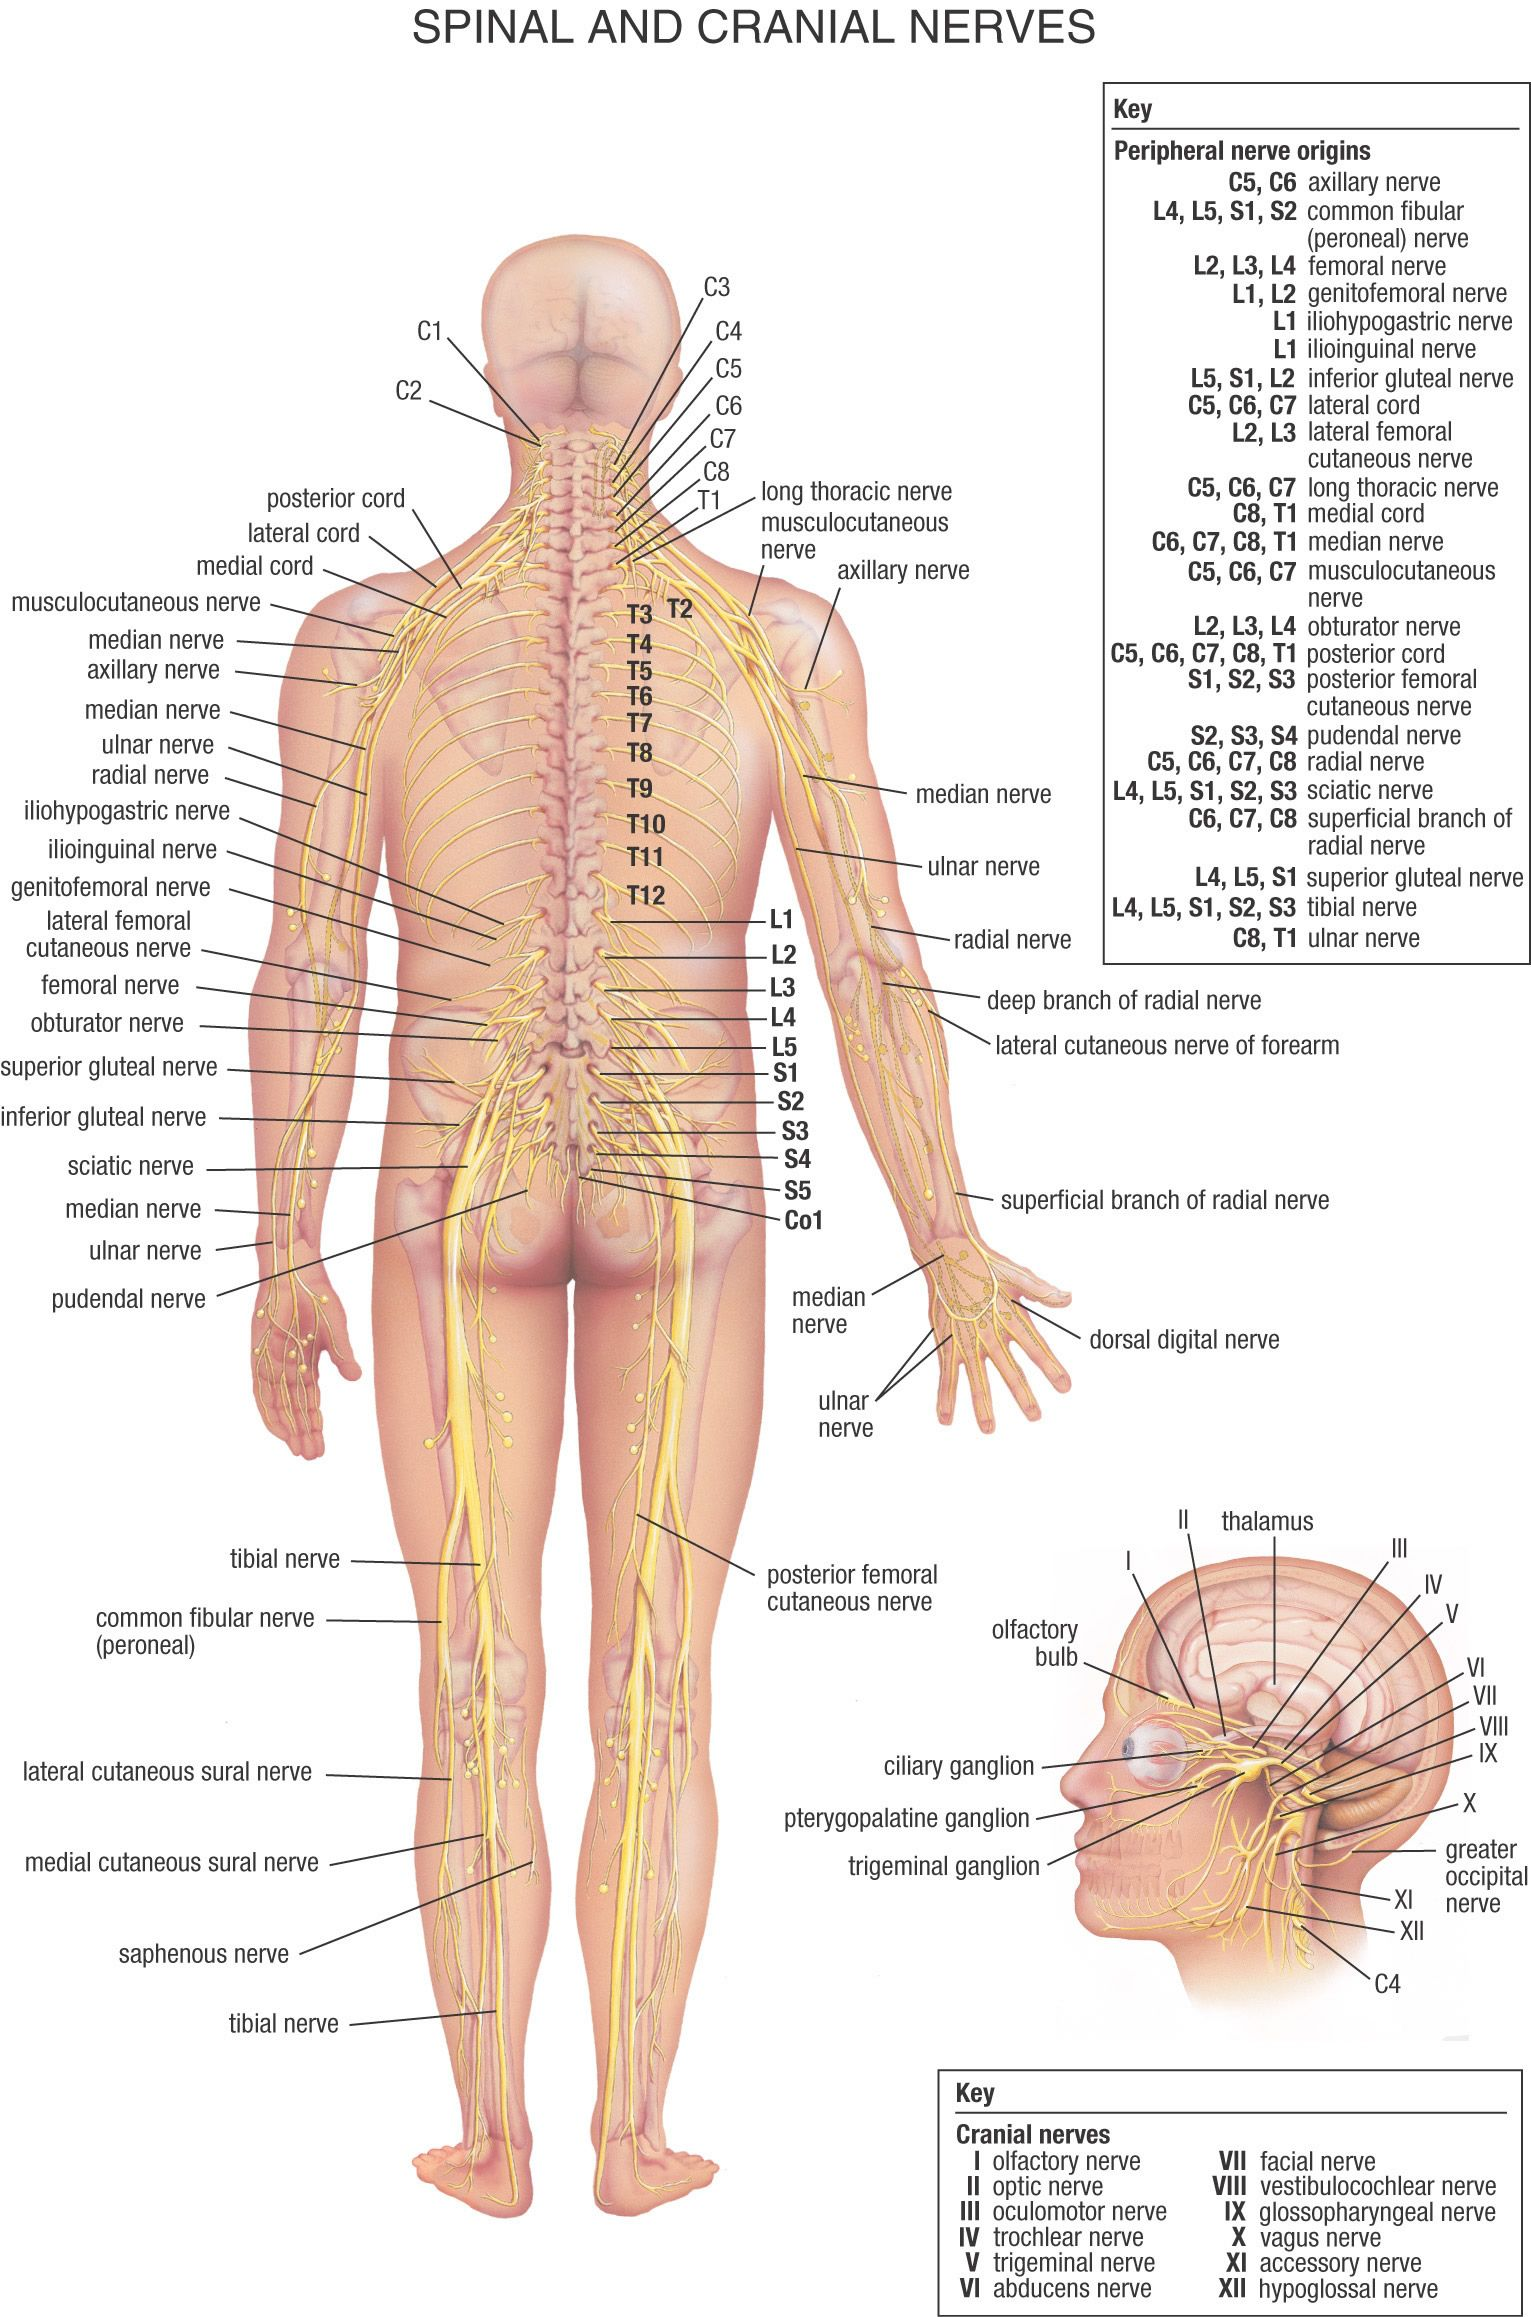 ANATOMY | Pinterest | Cranial nerves, Nervous system and Acupuncture